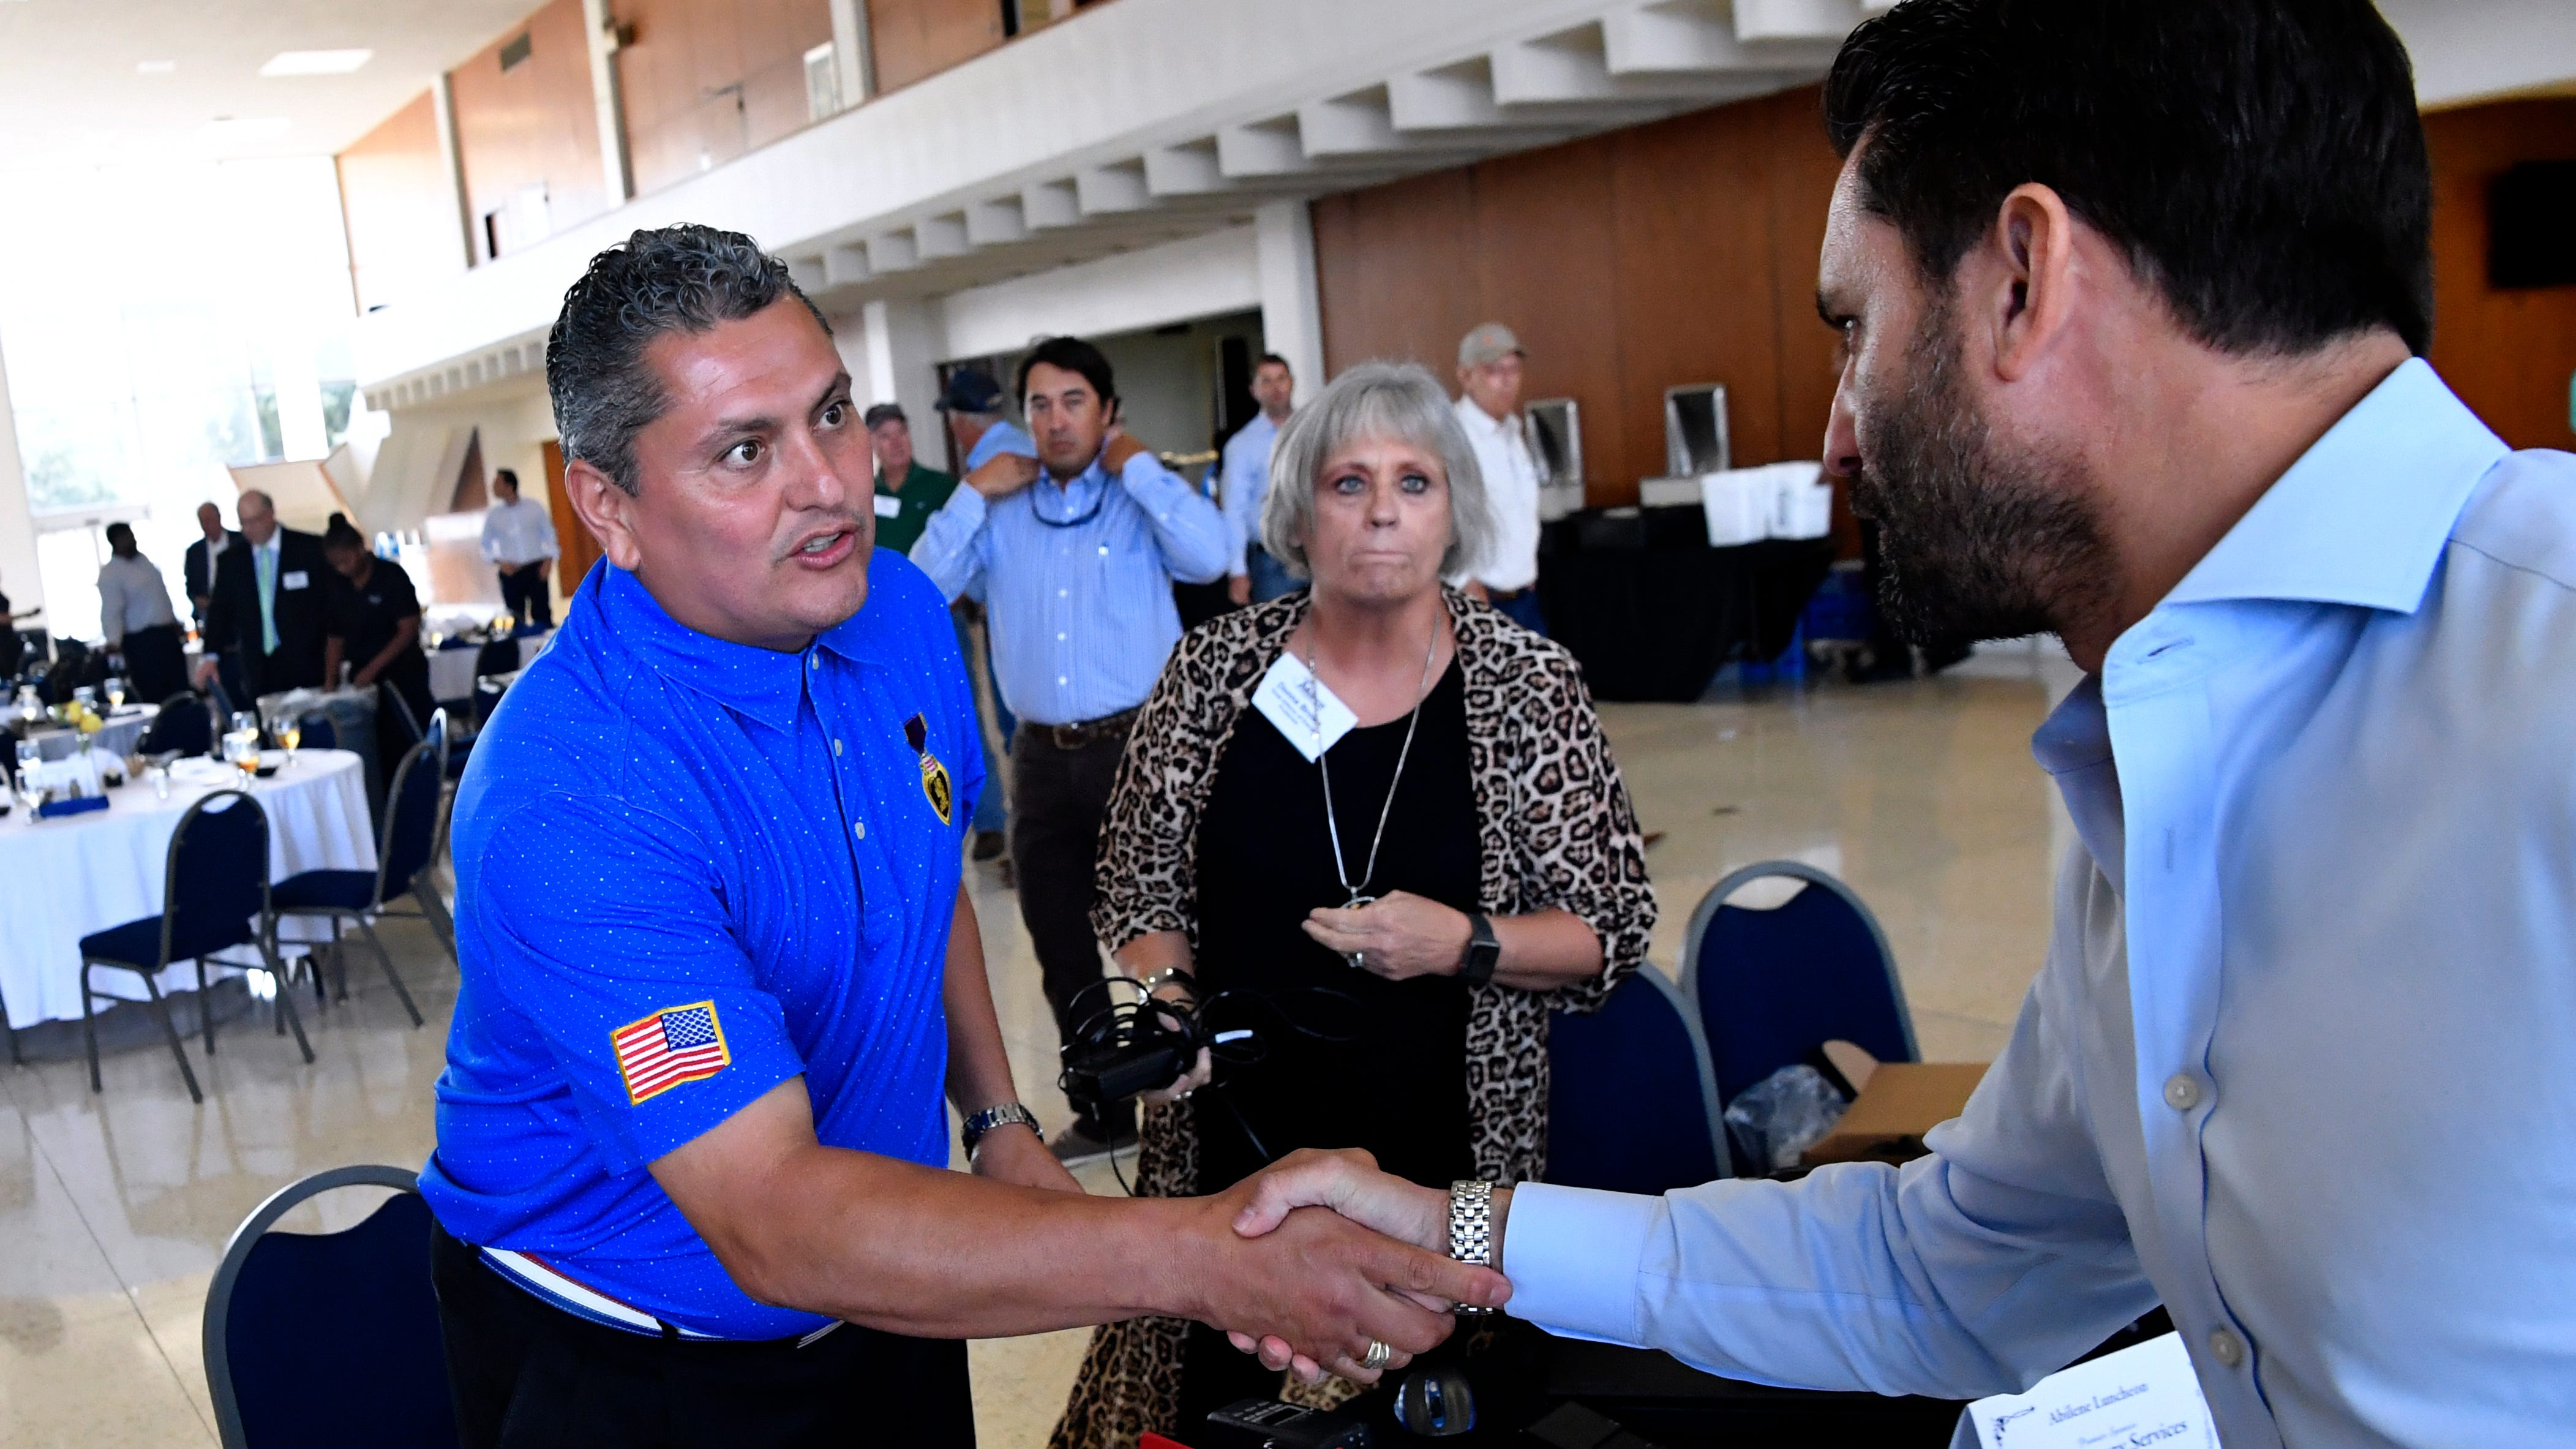 Major Ed Pulido shakes hands with James Filbey after speaking to theTexas Alliance of Energy Producers luncheon Tuesday Sept. 18, 2018. The event was held at the Abilene Convention Center, Pulido is a retired U.S. Army major who lost one leg while serving in Iraq.